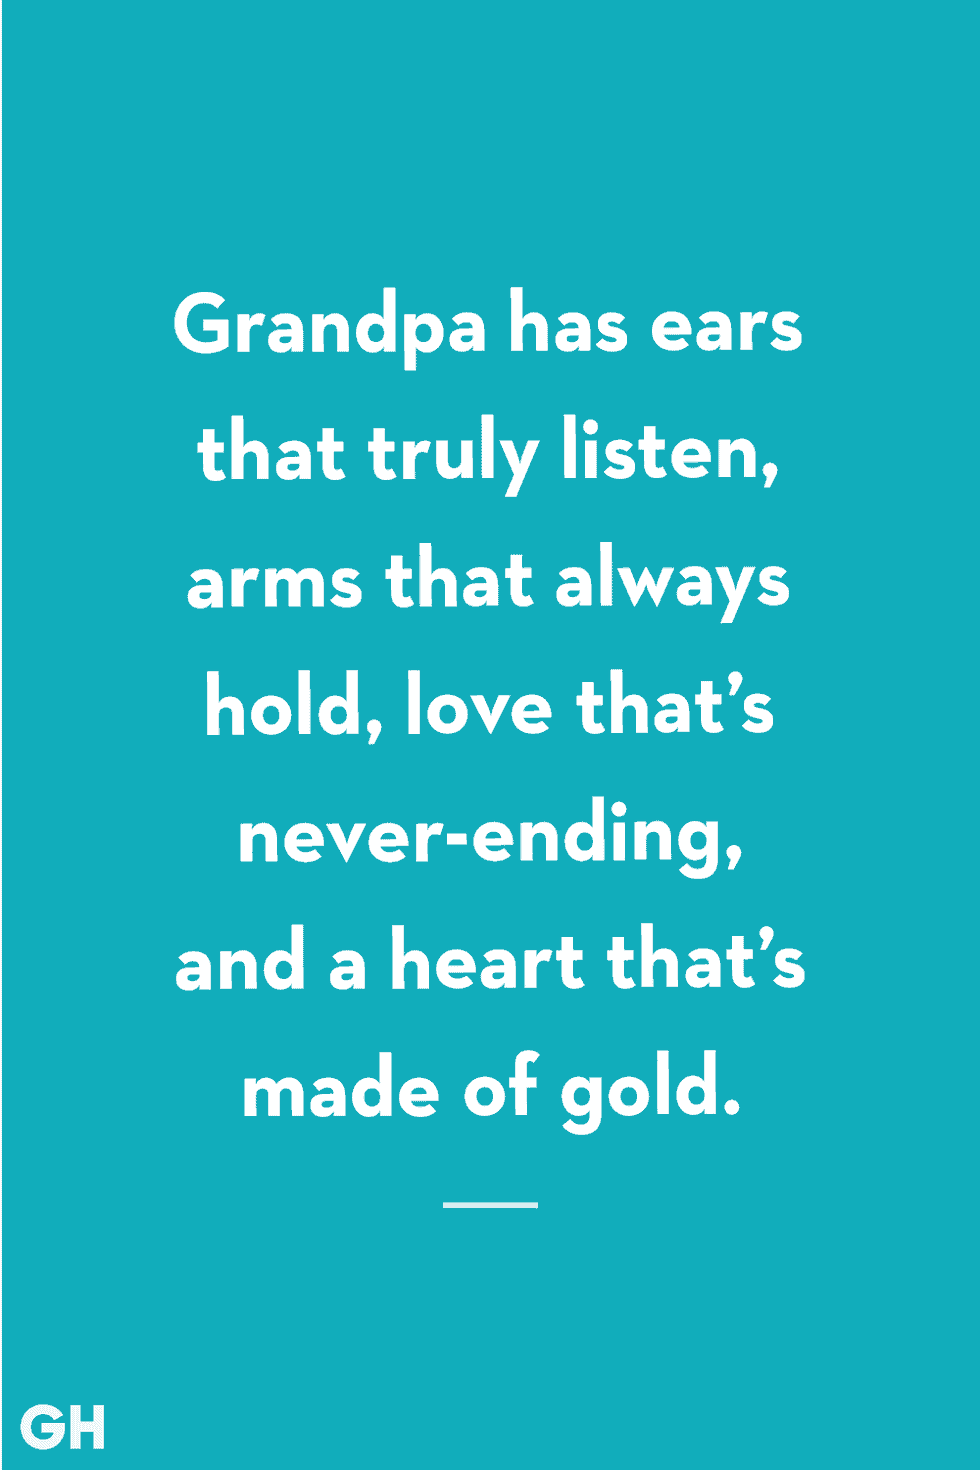 Best Relationship with grandfather. 4